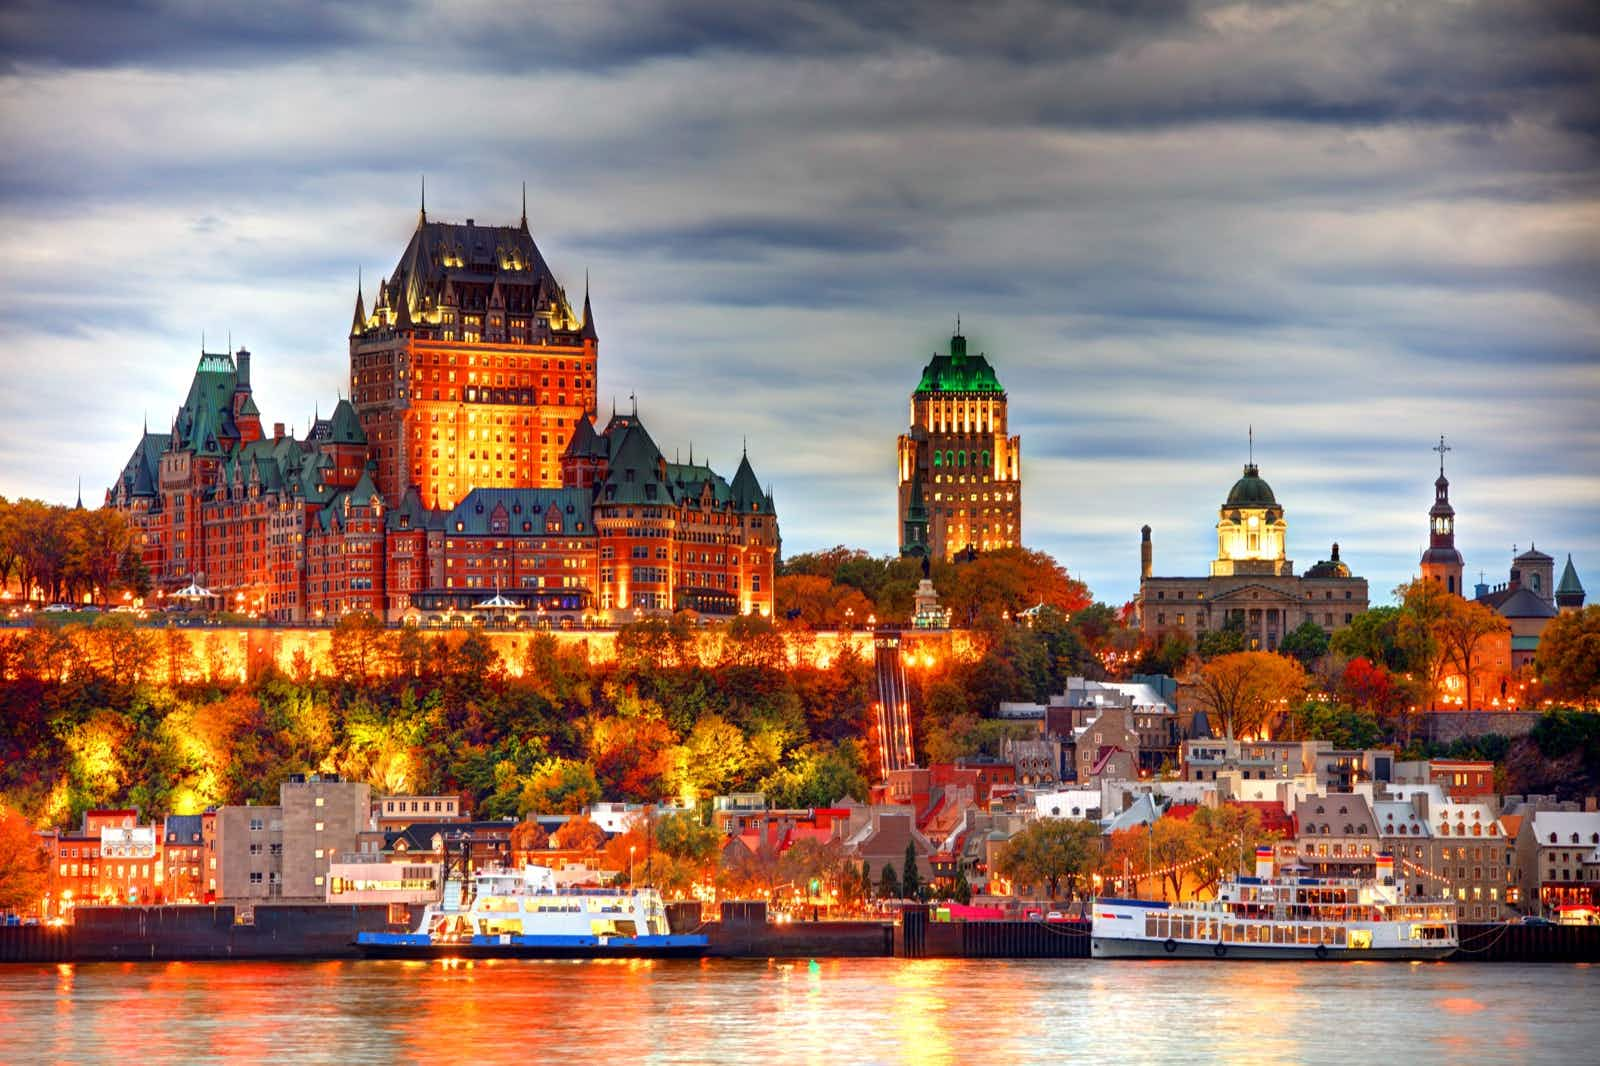 Quebec City's amazing skyline is just one reason to visit this jewel on the St Lawrence © DenisTagneyJr / Getty Images